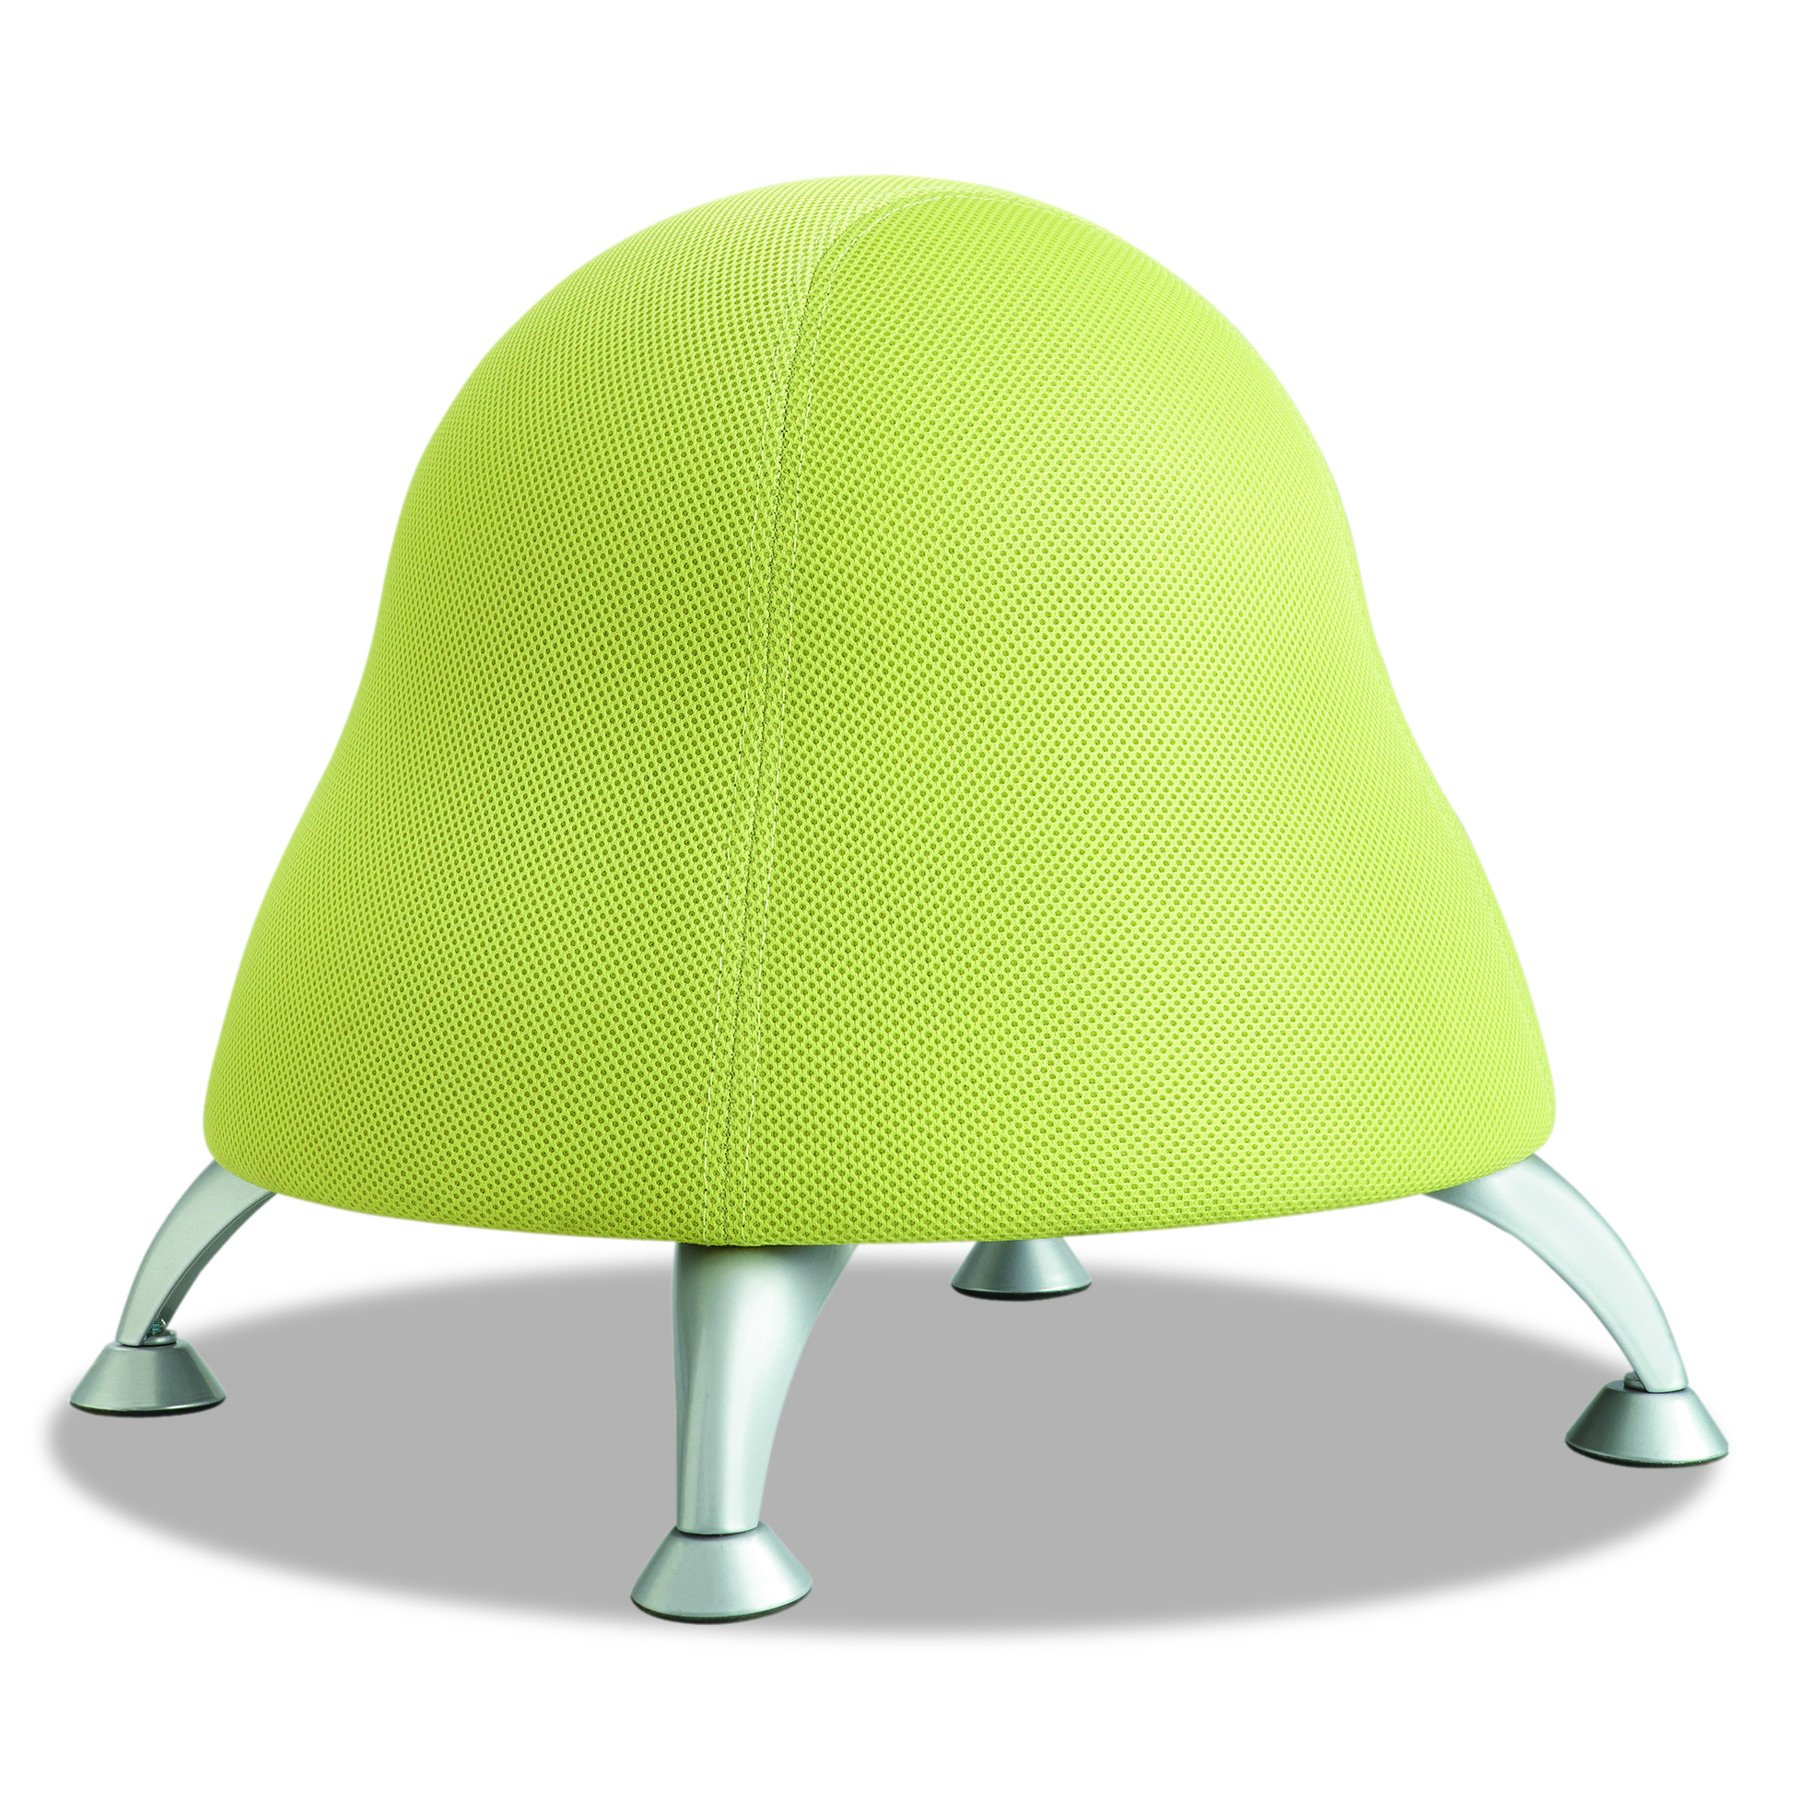 Safco Products Runtz Ball Chair 4756GS, Green Apple, Anti-Burst Exercise Ball, Active Chair